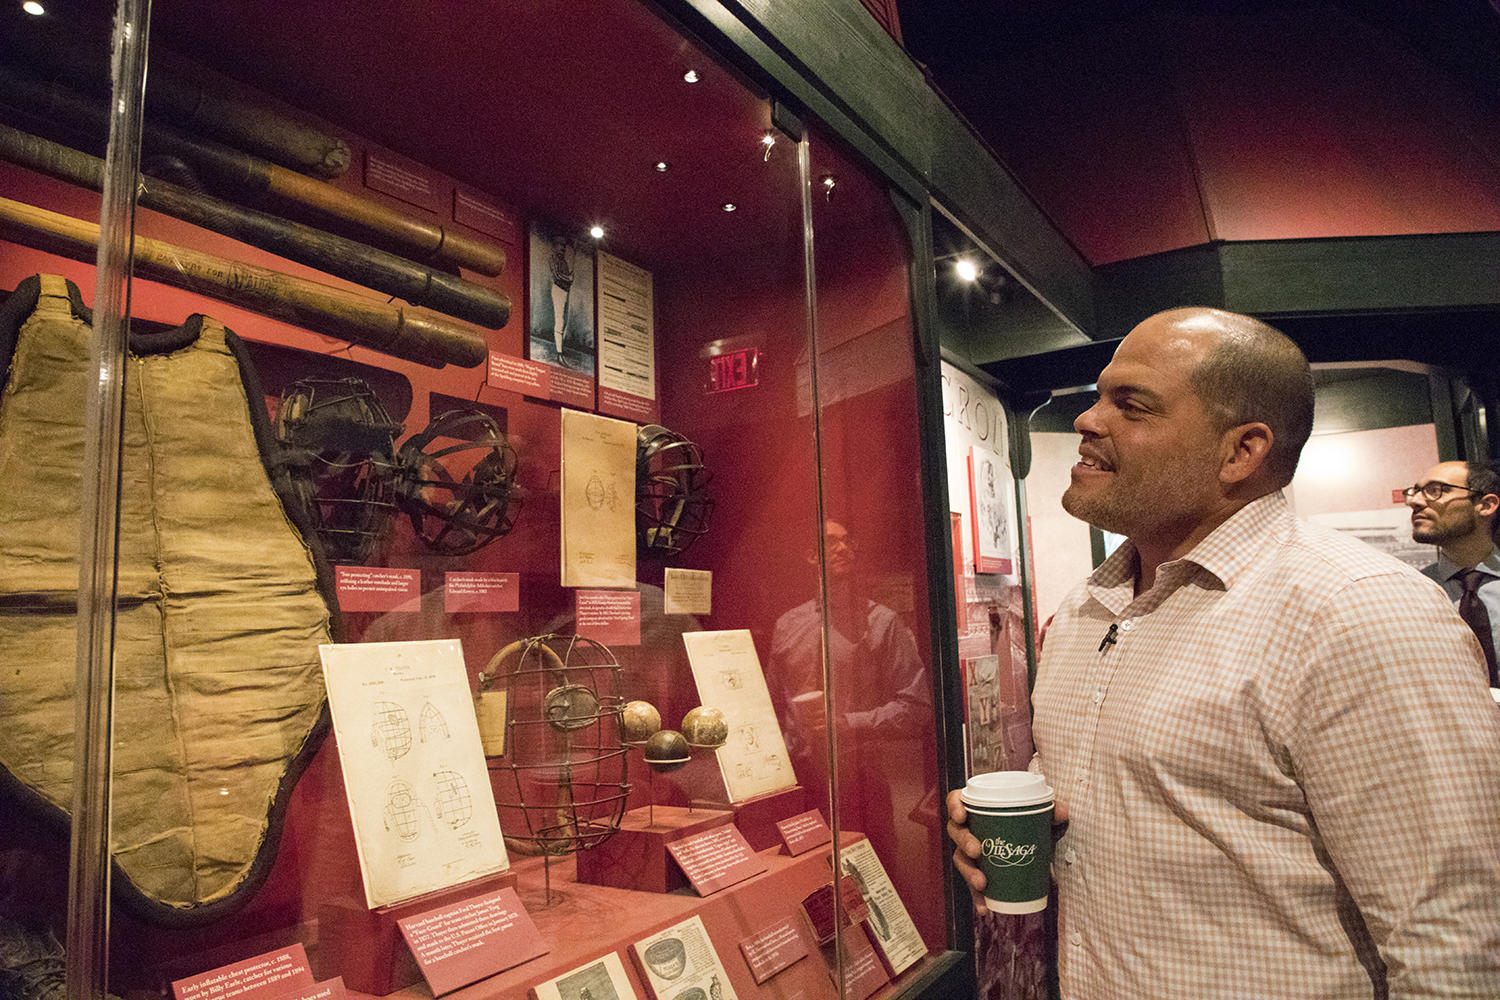 Iván Rodríguez, pictured above, takes a tour of the Museum during his Feb. 28 visit in preparation for his induction into the Hall of Fame. (Milo Stewart Jr. / National Baseball Hall of Fame)